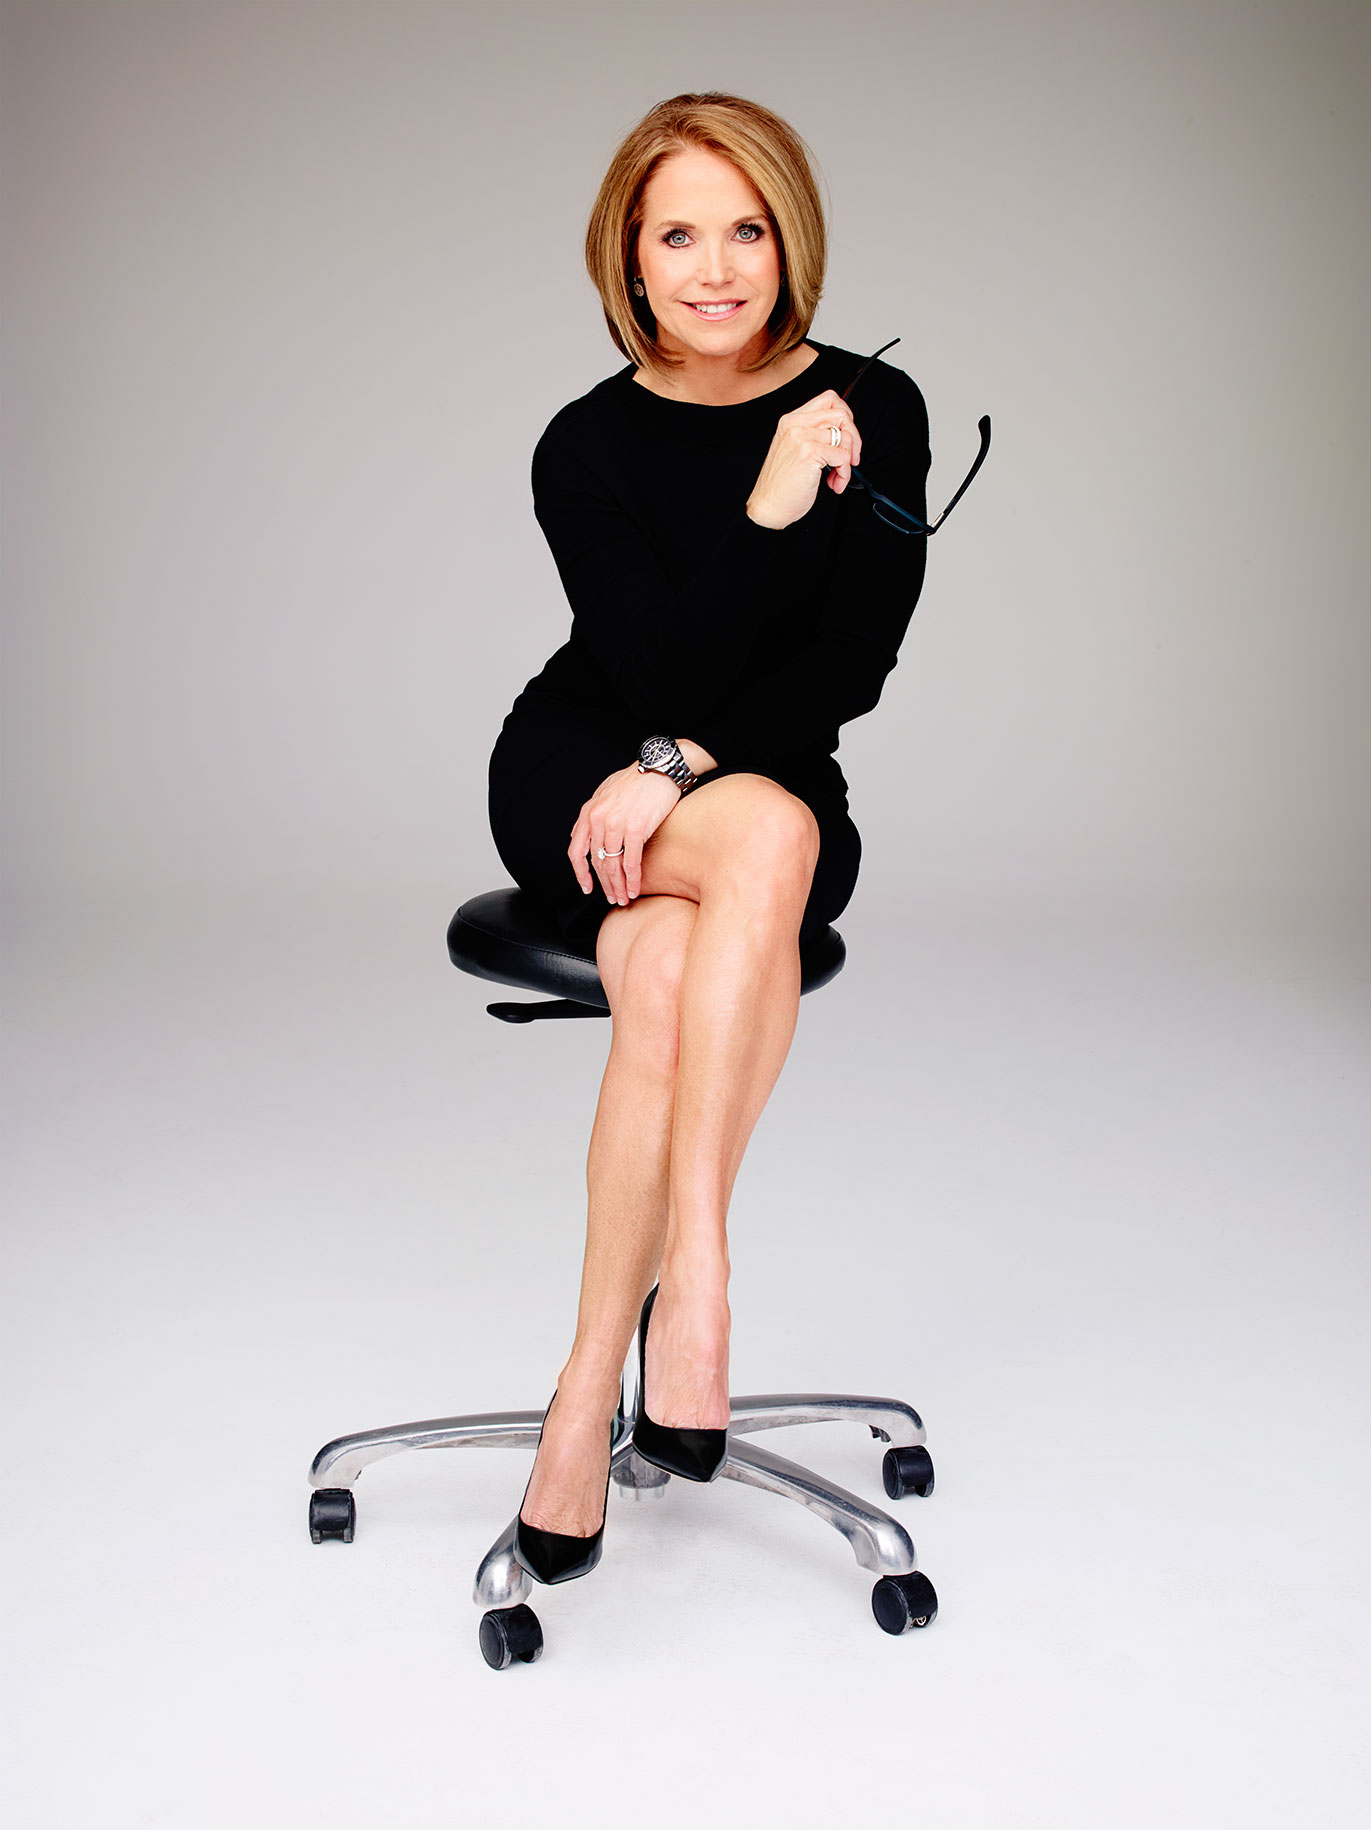 katie couric instagramkatie couric show, katie couric height, katie couric snowden, katie couric reddit, katie couric anchor, katie couric husband, katie couric cbs, katie couric carly fiorina, katie couric instagram, katie couric betty white, katie couric, katie couric net worth, katie couric yahoo, katie couric sarah palin, katie couric fed up, katie couric john molner, katie couric wiki, katie couric biography, katie couric biceps, katie couric muscles